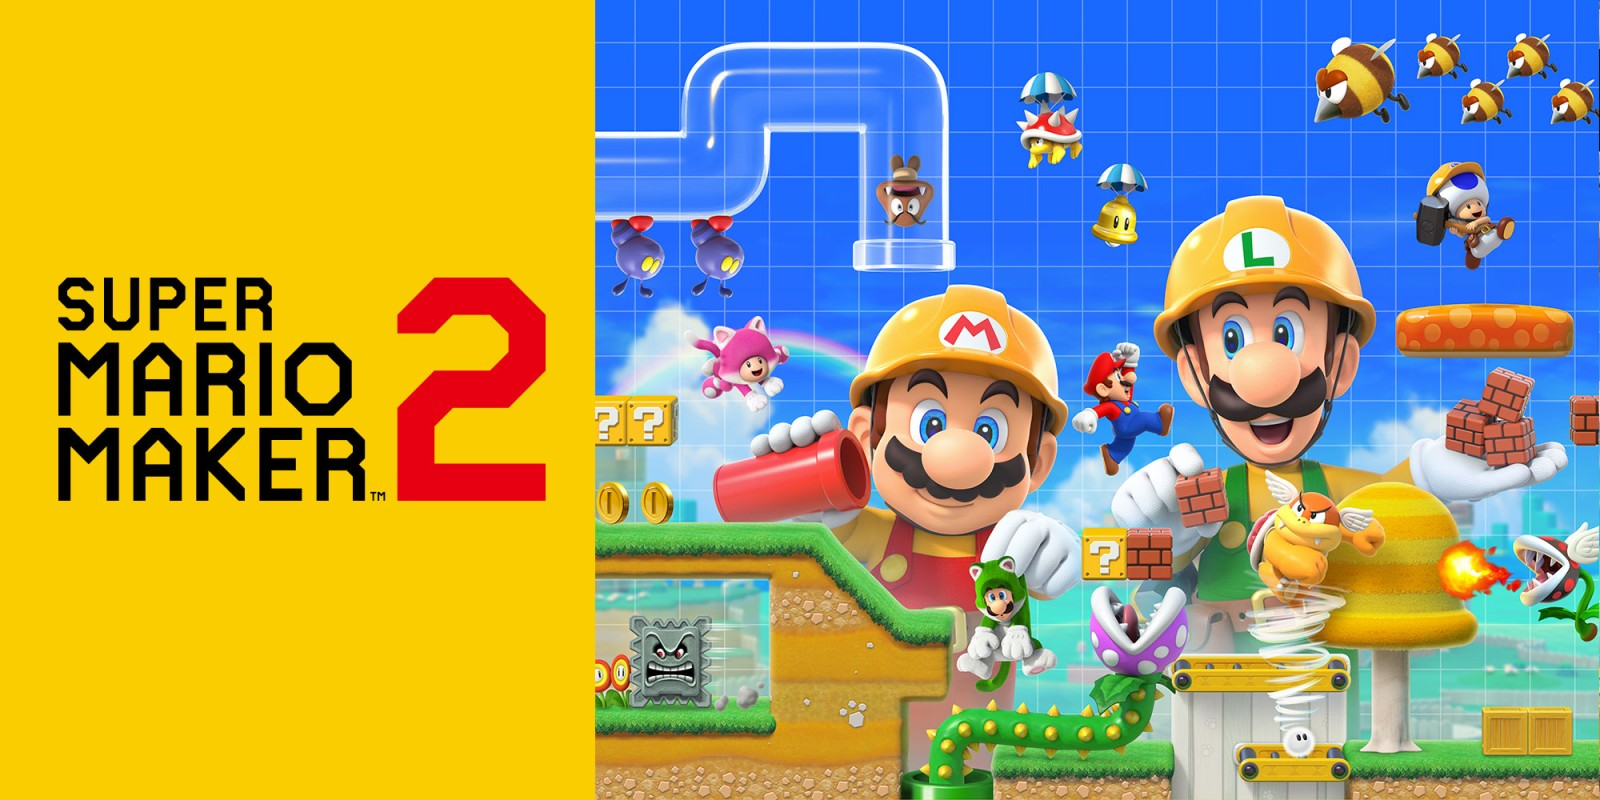 https://cdn03.nintendo-europe.com/media/images/10_share_images/games_15/nintendo_switch_4/H2x1_NSwitch_SuperMarioMaker2_image1600w.jpg